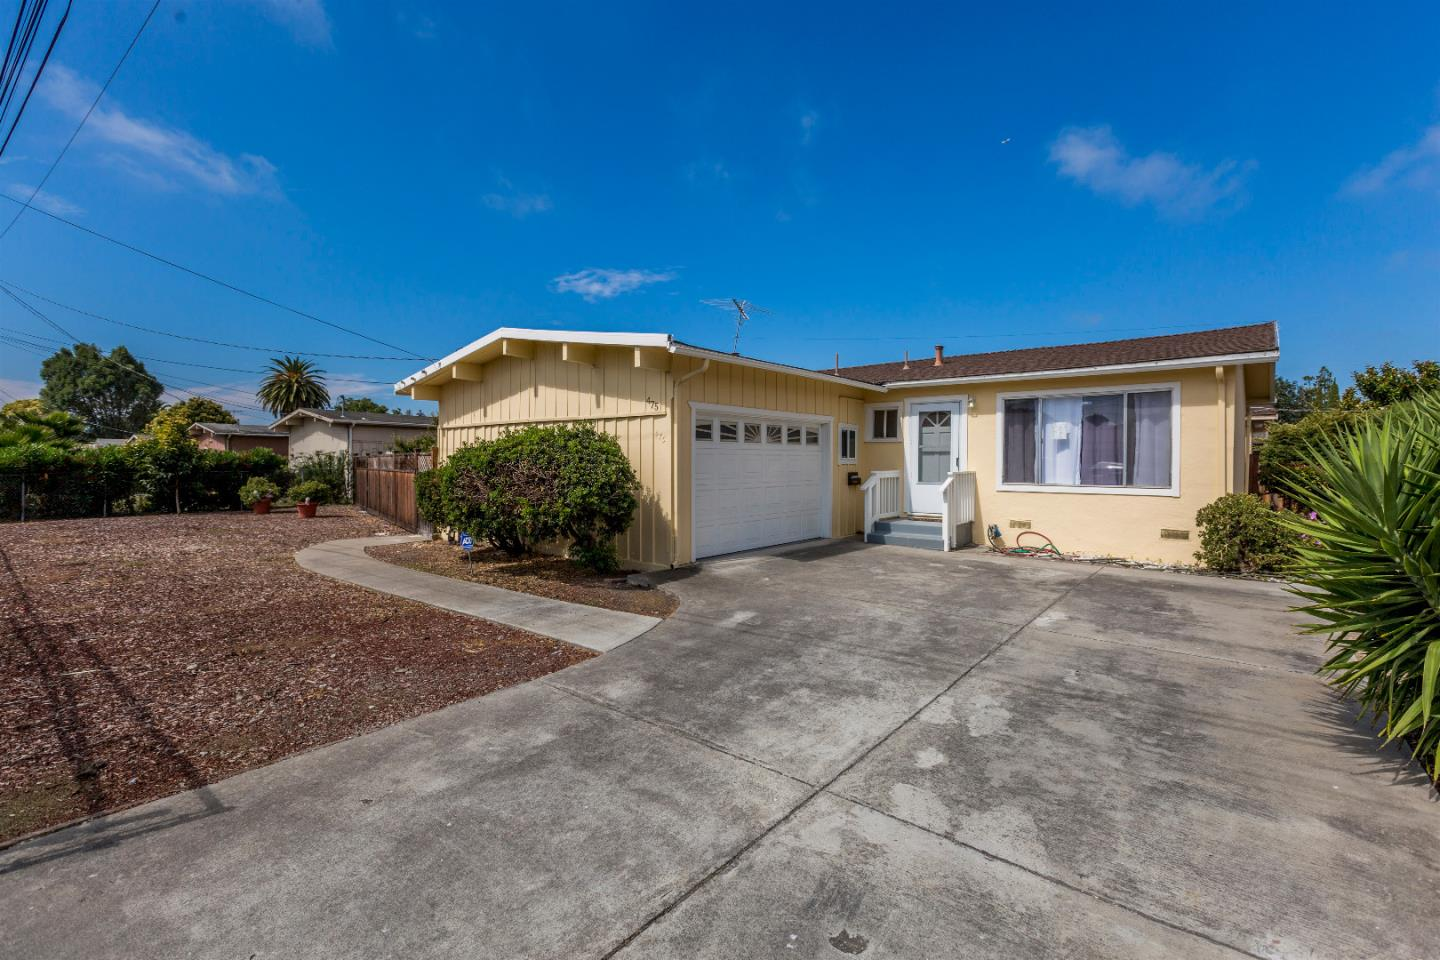 Single Family Home for Sale at 475 Larkspur Drive East Palo Alto, California 94303 United States